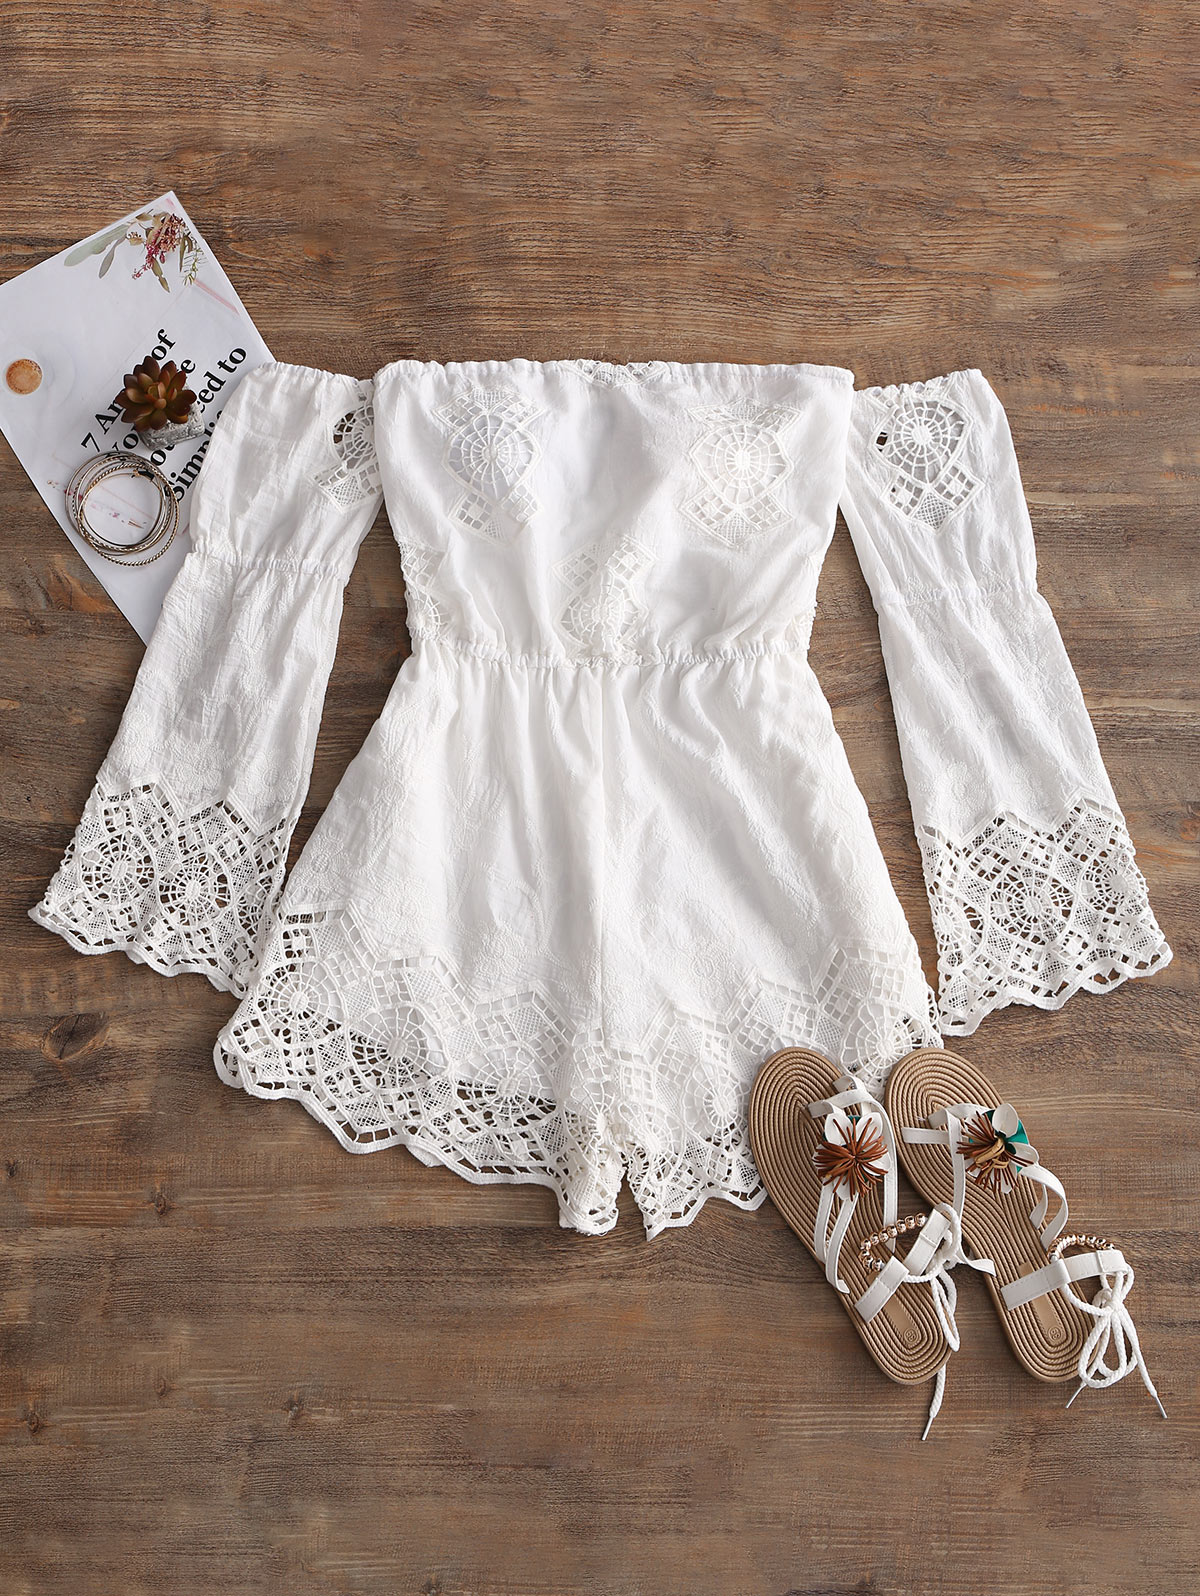 c9112a3a6df2 ZAFUL 2018 New Women Cover Ups Off Shoulder Crochet Panel Romper Exposed  Shoulder Scalloped Summer Beach Cover Up for Female